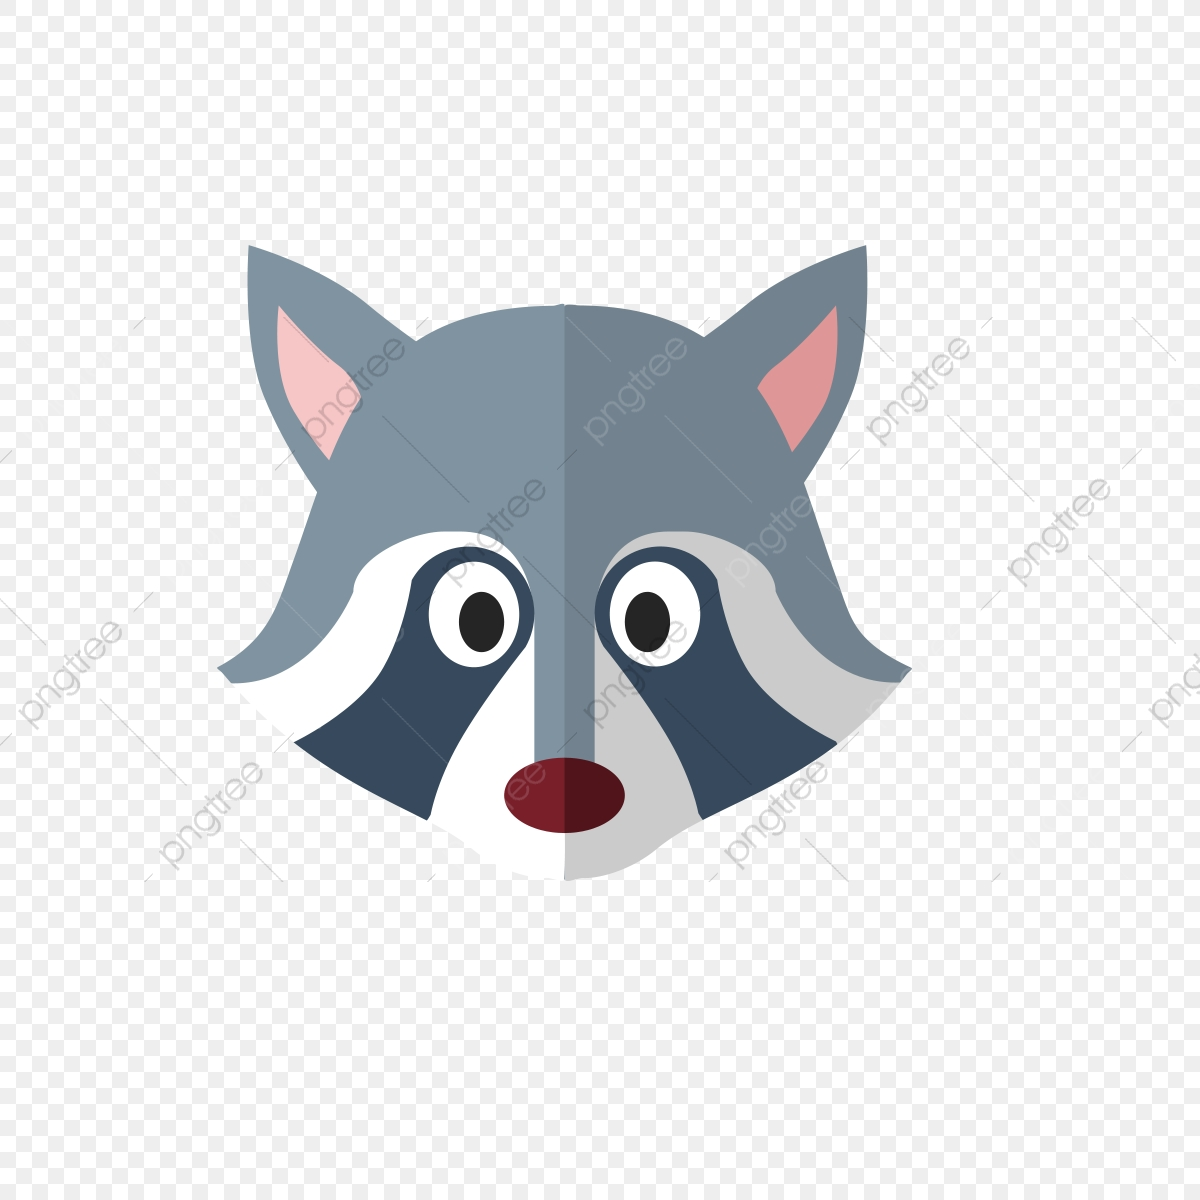 Raccoon Clipart Icon, Icon, Social Media Icons, Camera Icons ... clipart royalty free download